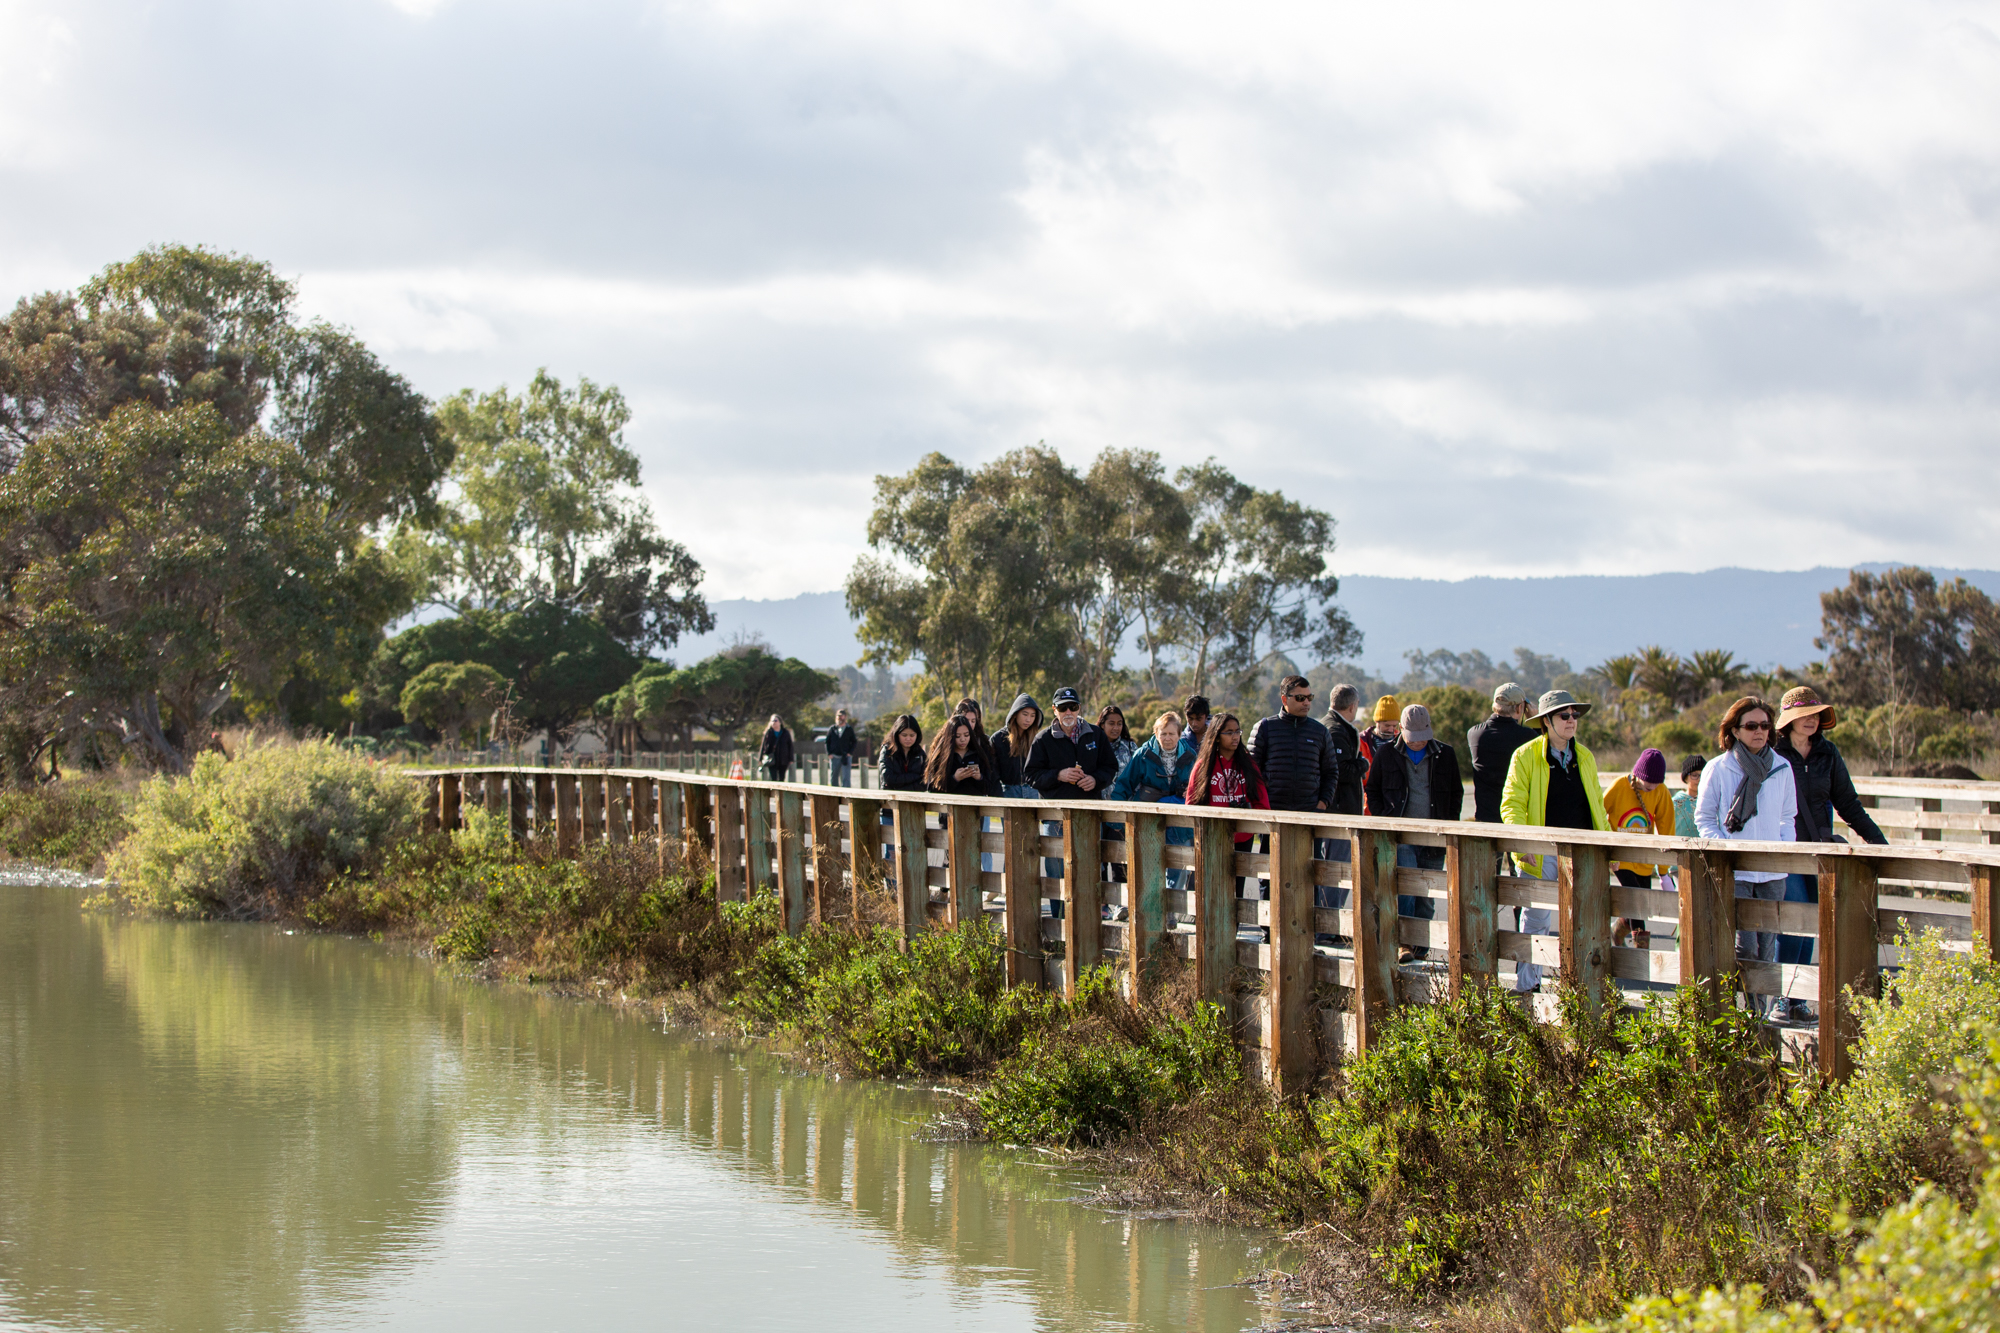 A group of visitors walks past a higher-than-normal sea level that nearly reaches the road at the Palo Alto Baylands Nature Preserve during a king tide on Jan. 12.